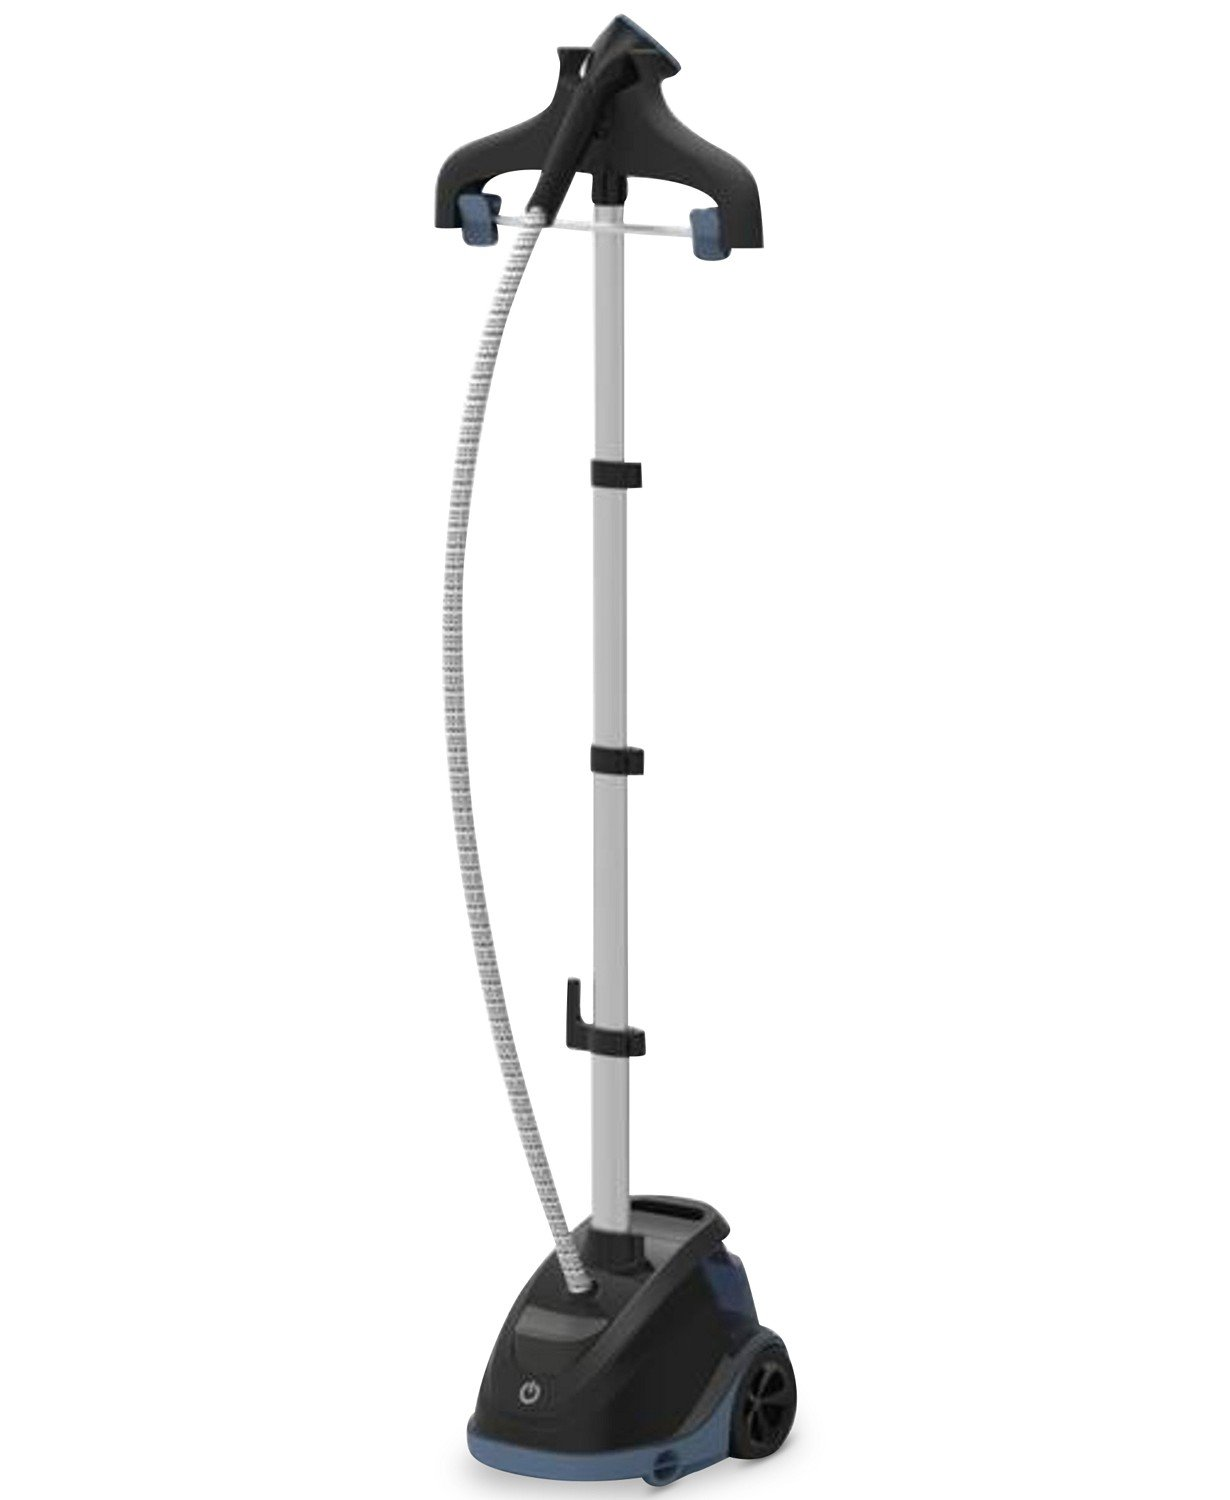 Rowenta Home IS6520 Line Master 360° Garment Steamer with Rotating Hanger, Blue